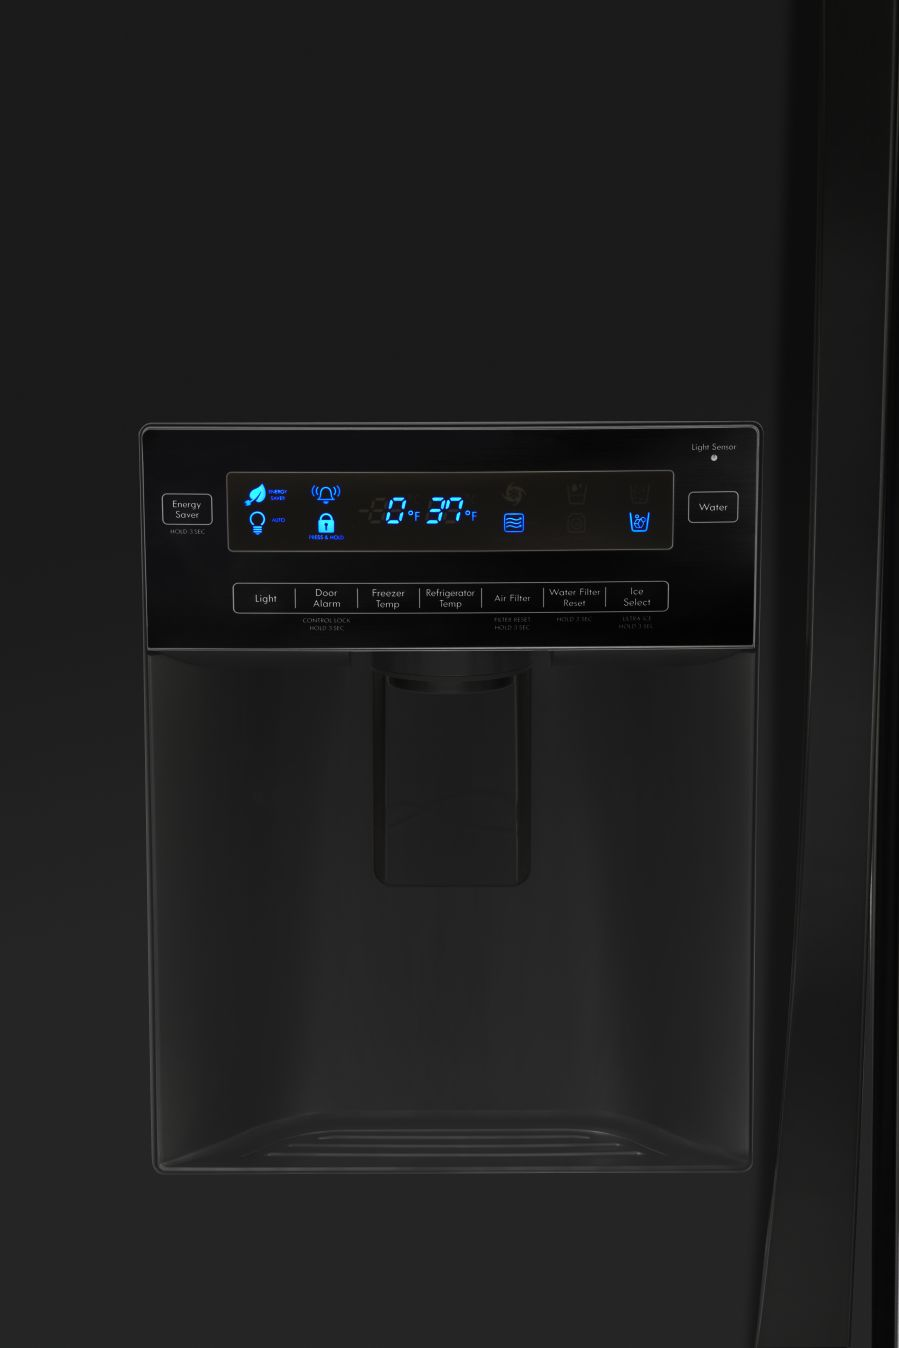 Kenmore Elite 31.0 cu. ft. French Door Bottom-Freezer Refrigerator- Black